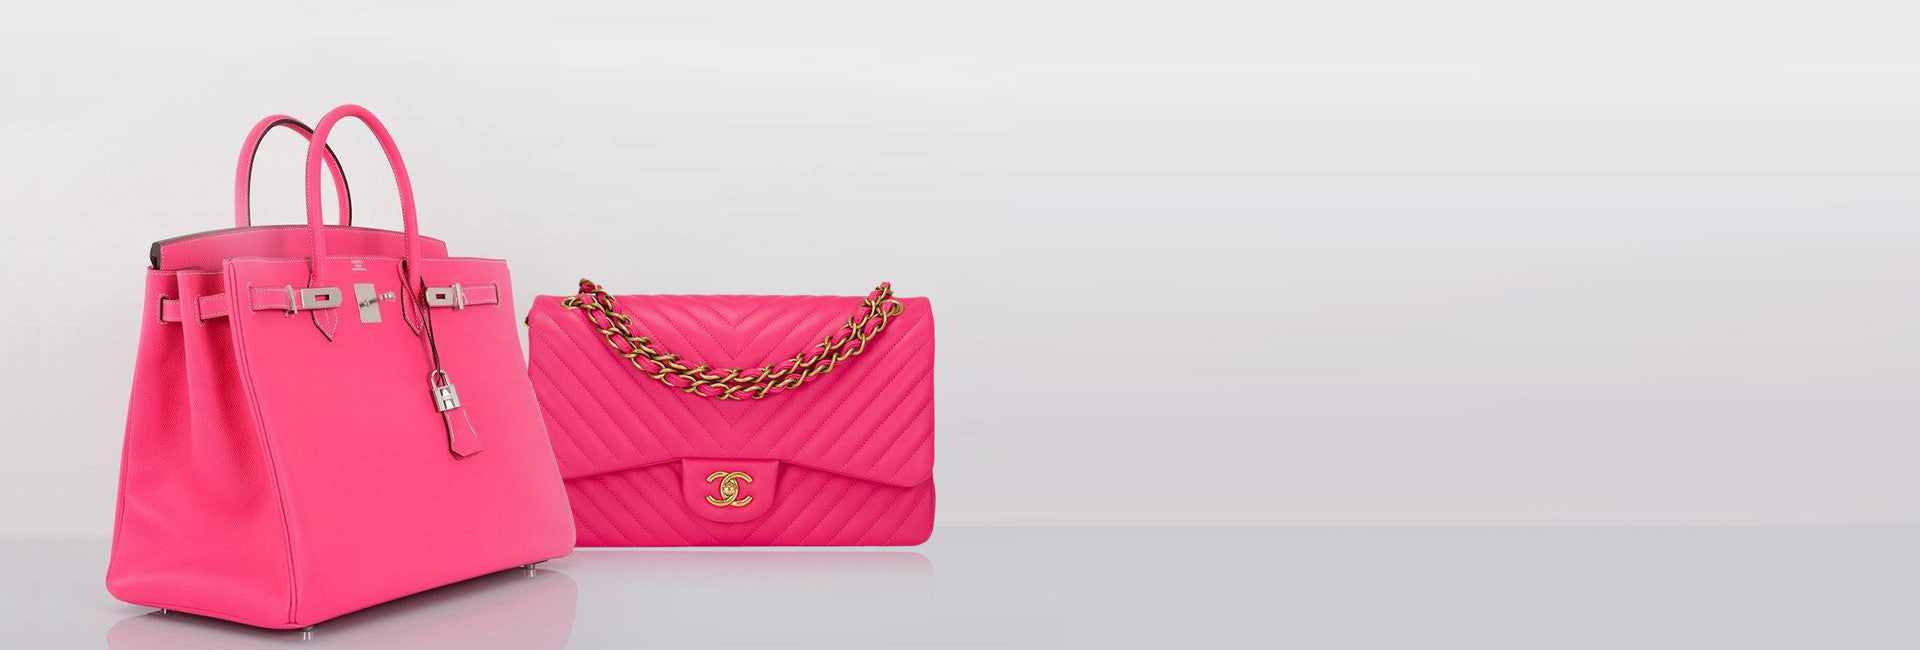 Luxury Handbags Christian Louboutin Shoes Amp Apparels For